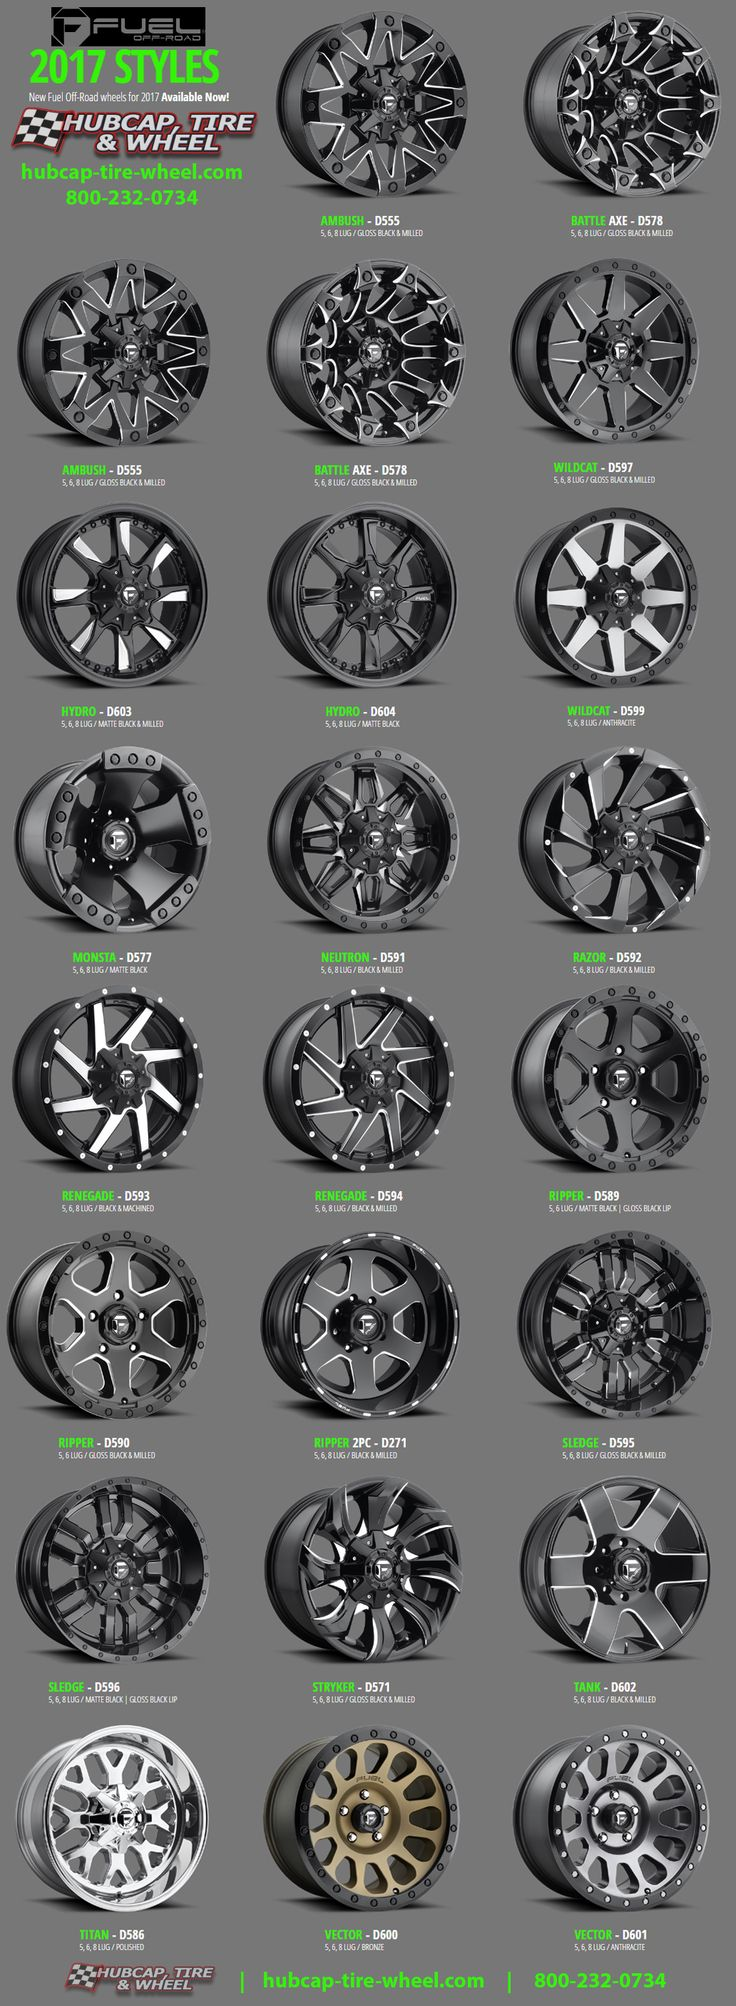 2017 Fuel Off-Road Wheels & Rims - For Jeeps, Trucks, SUV's  #RePin by AT Social Media Marketing - Pinterest Marketing Specialists ATSocialMedia.co.uk